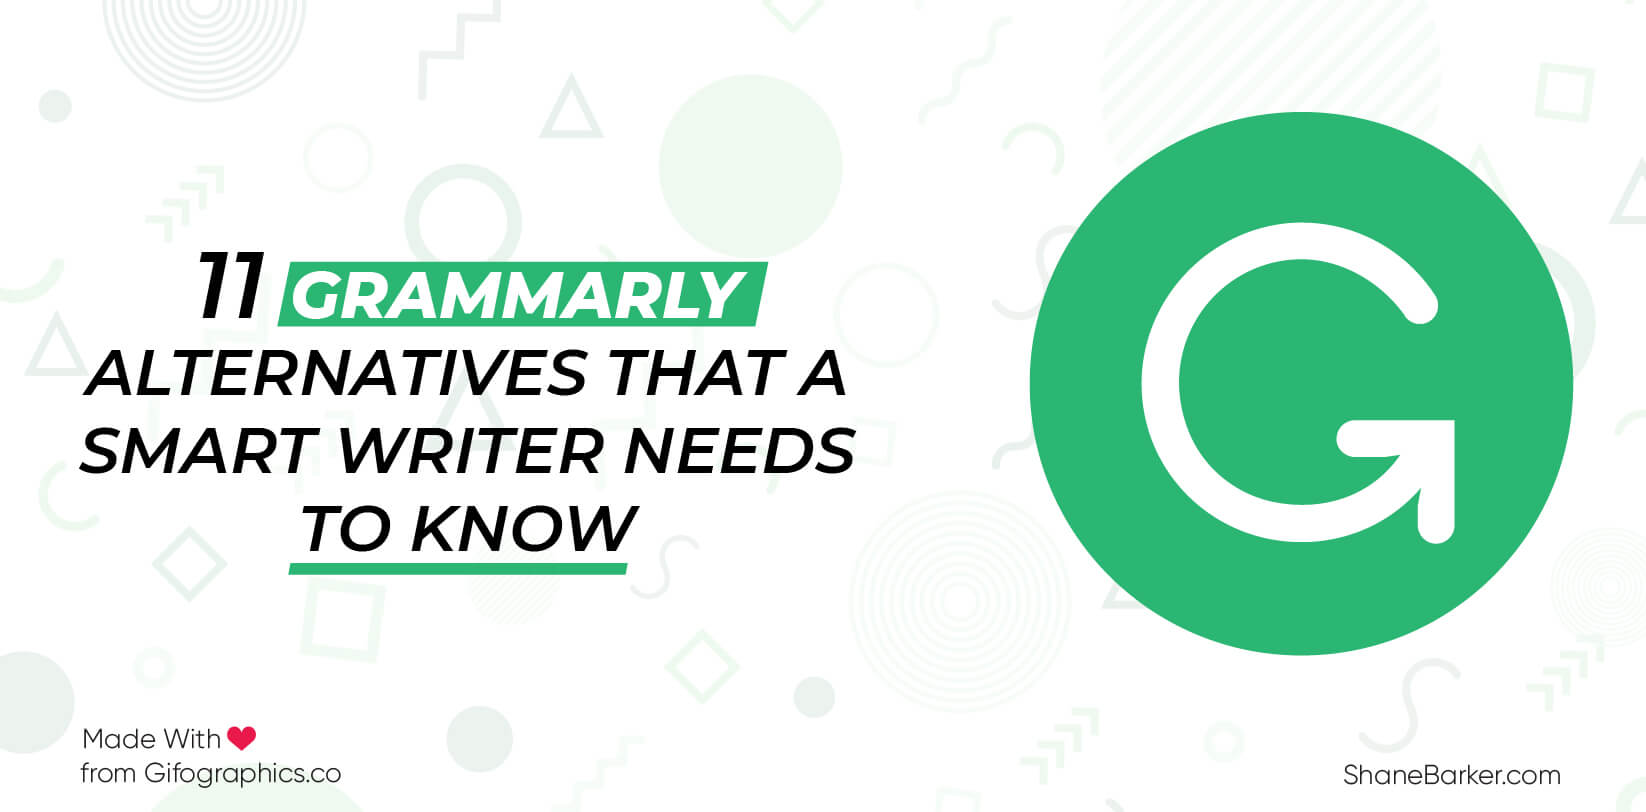 Getting My Ginger Vs Grammarly To Work